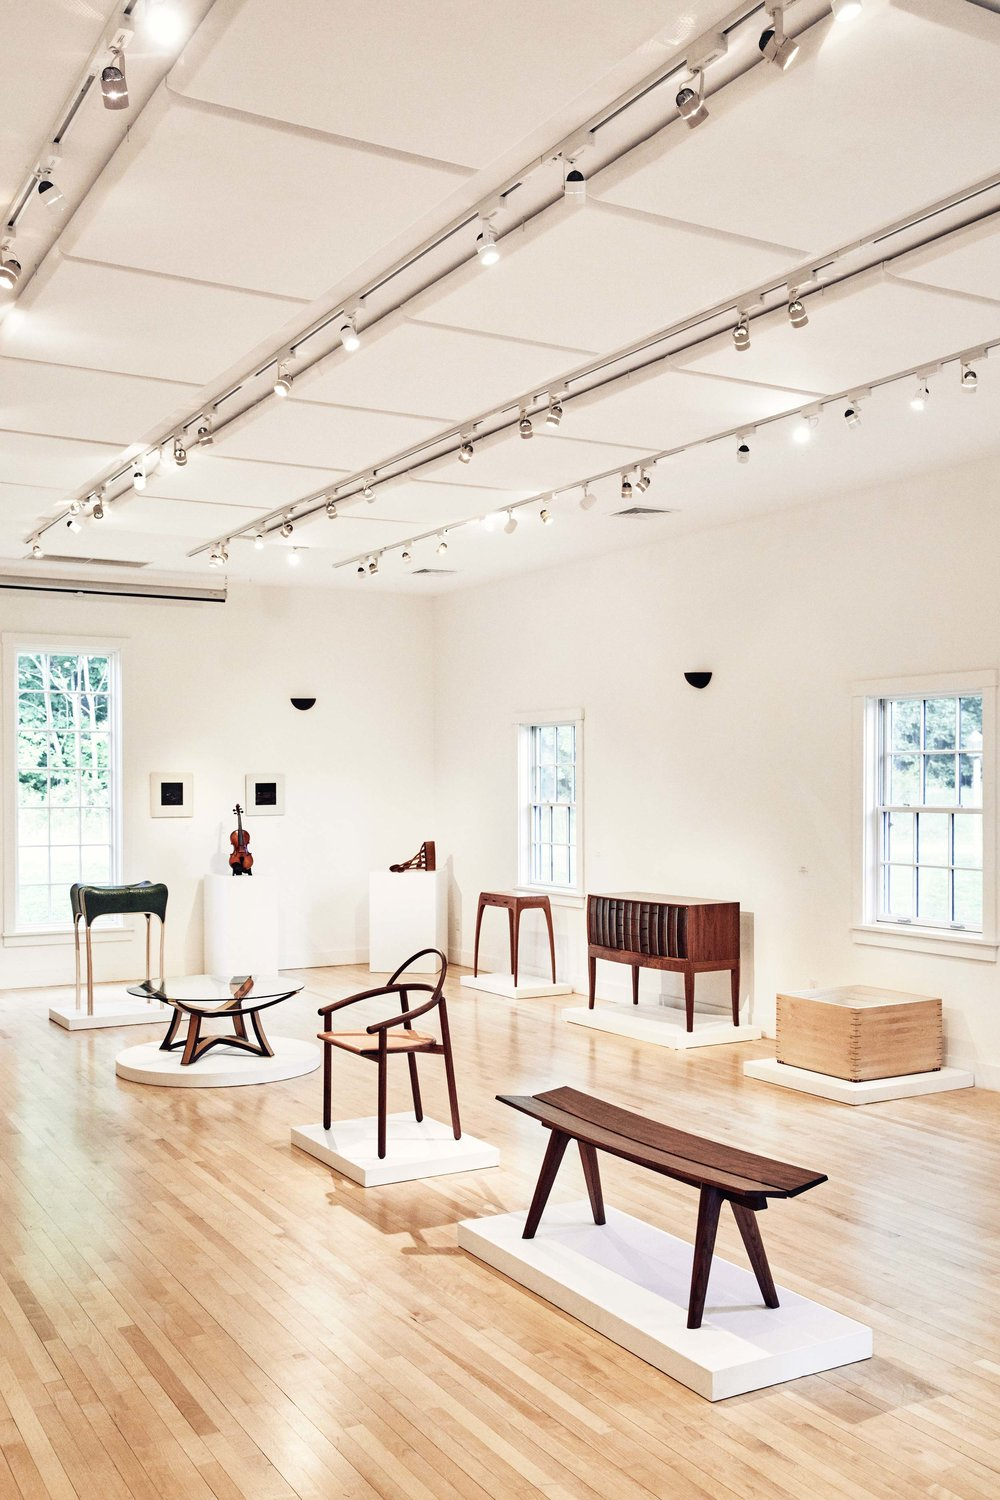 The Messler Gallery at the Center for Furniture Craftsmanship holds four shows a year, open to the public. Seen here is a collection of faculty work.